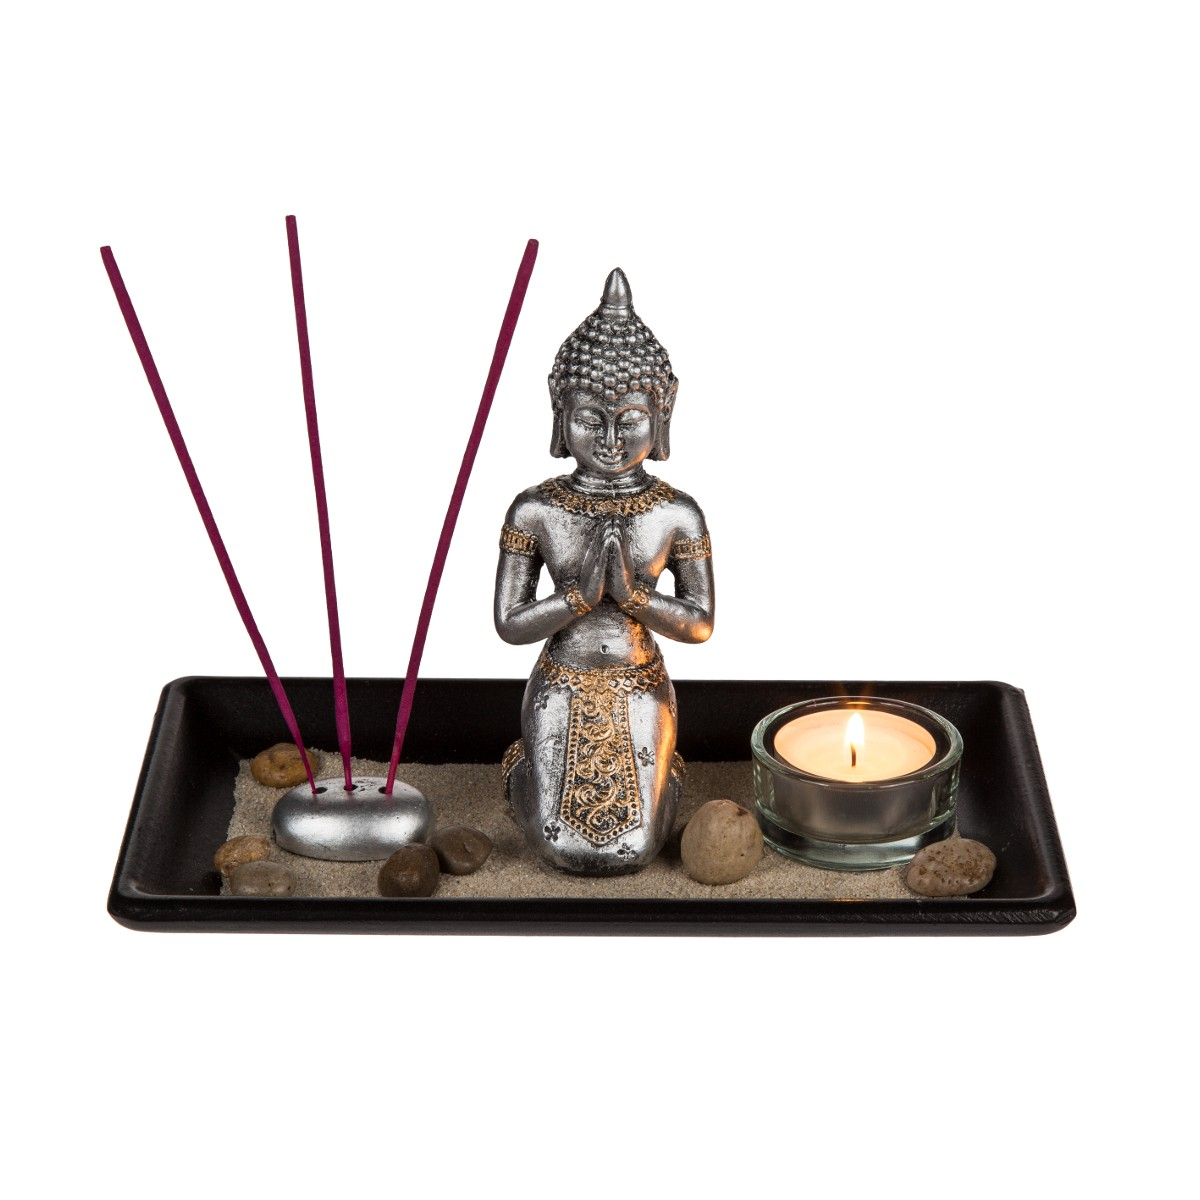 deko set buddha mit zubeh r auf holz tablett. Black Bedroom Furniture Sets. Home Design Ideas